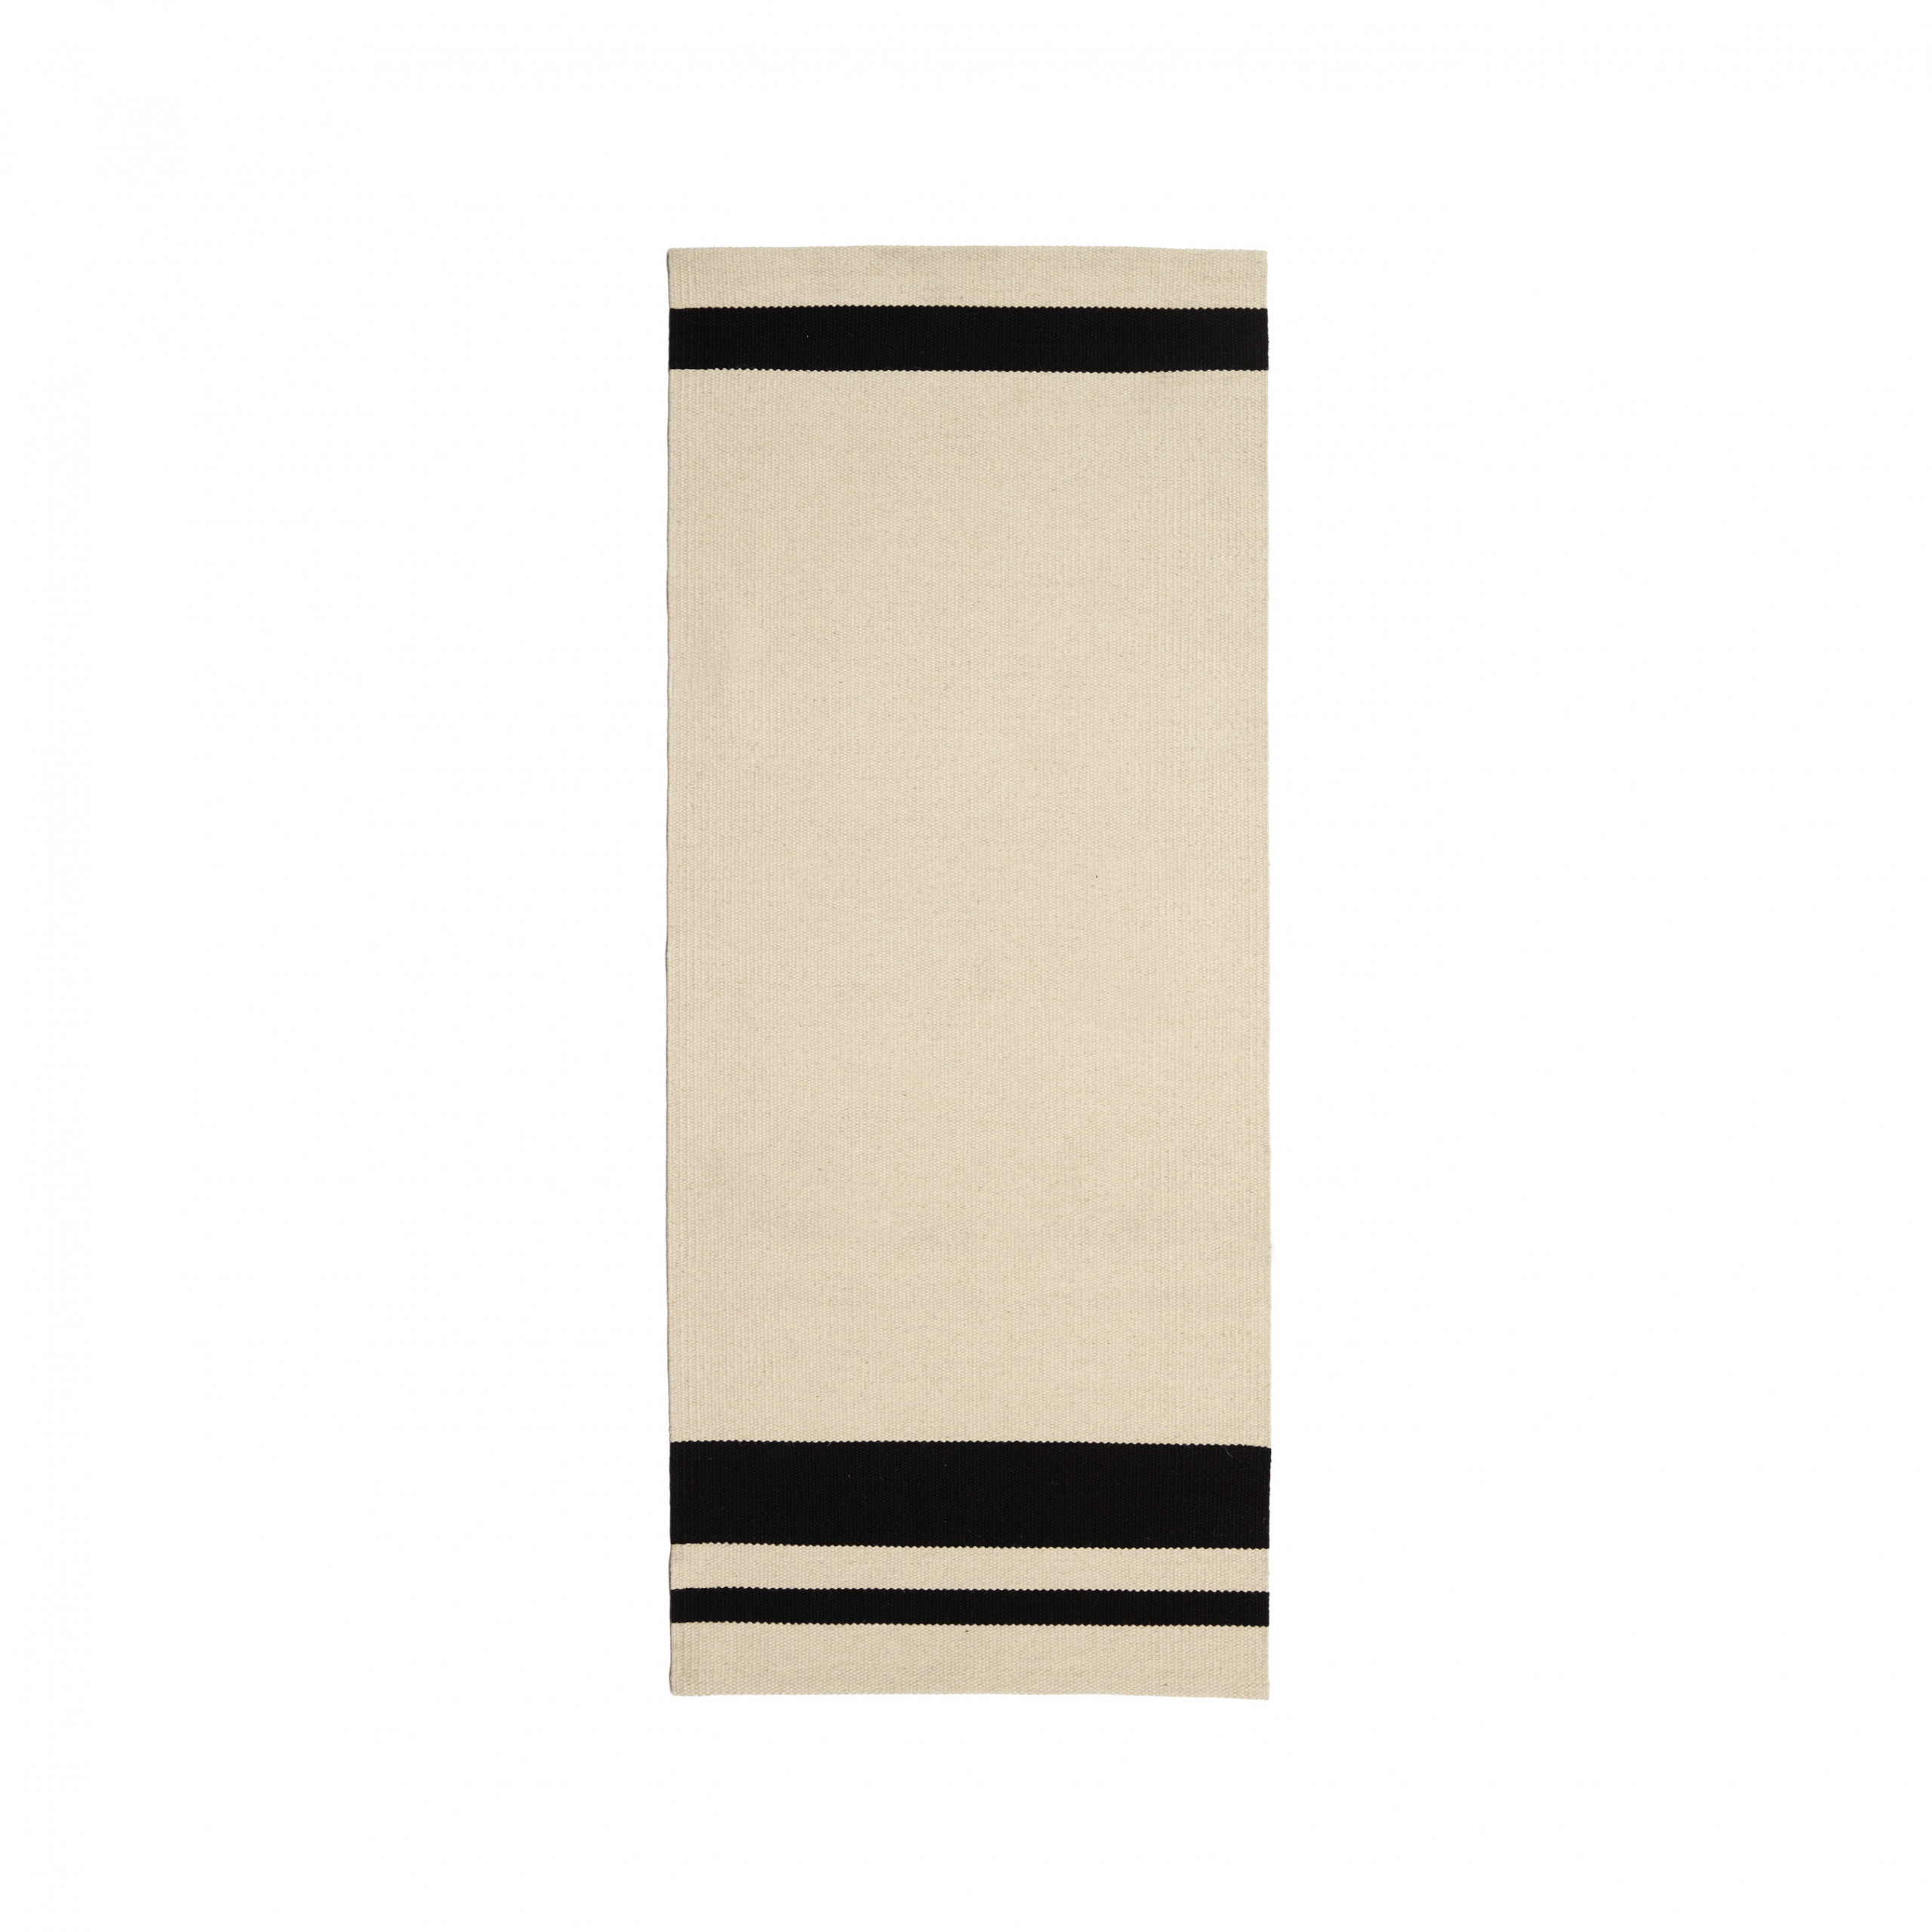 Frenzy Small Rug - <p>The Alfred collection consists of five series (Fran, Frenzy, Lucy, Ivy, Billie) of handwoven minimalist carpets made by Belgian textile designers Marie Mees and Athérine Biasino. Firstly, all carpets are handwoven with a mixture of two top-shelf wools from New Zealand and Portugal, the first offering the right softness and look, the other adding strength. Secondly, the designers envision a minimalist aesthetic that resonates timelessness and not trendiness. In fact, hyped colours are fiercely avoided. By offering highly durable and supremely sober carpets, the Alfred Collection honours the archetype of the carpet, pure in form and in function, making it the perfect textile for the minimalist interior of the design admirer. Composition of the carpet is a mixture of Merino, New Zealand and Beira Alta (Portuguese wool).</p>  | Matter of Stuff